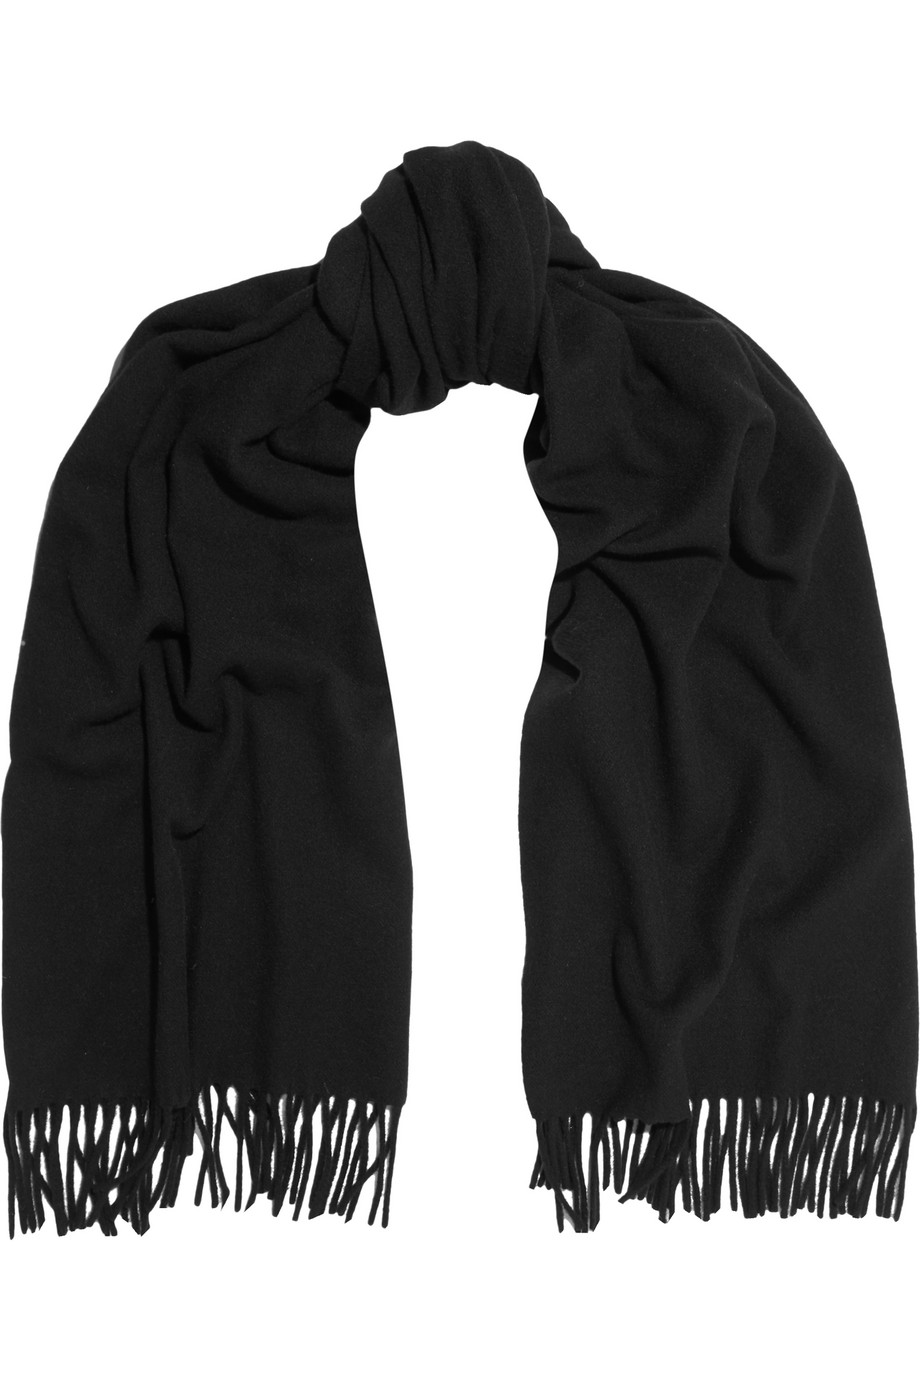 Acne Studios Canada Wool Scarf, Black, Women's, Size: One Size